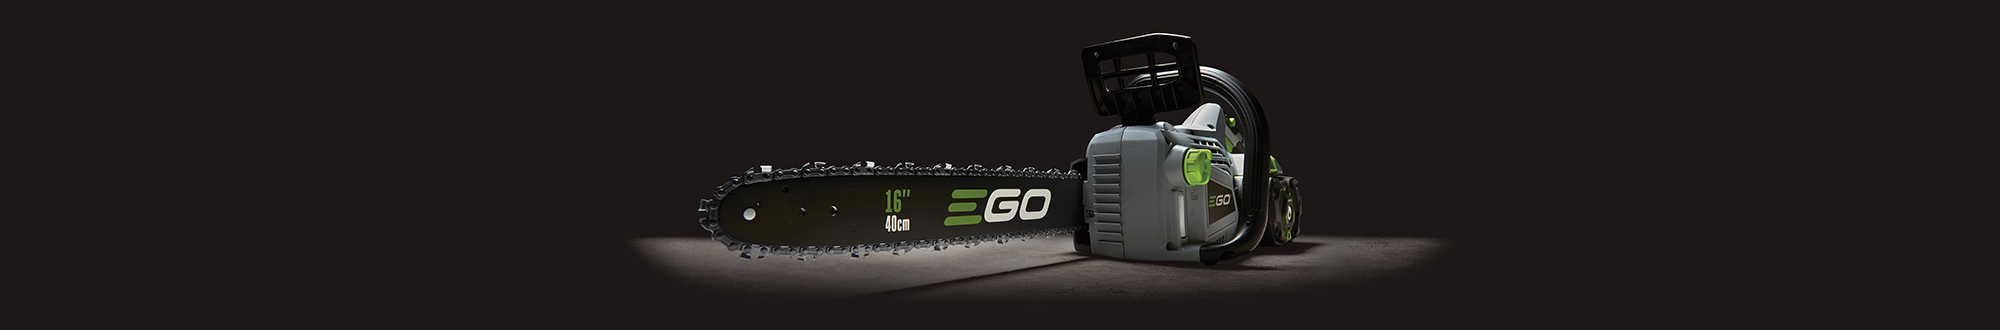 Ego Power Plus - Ego Power+ kettingzagen